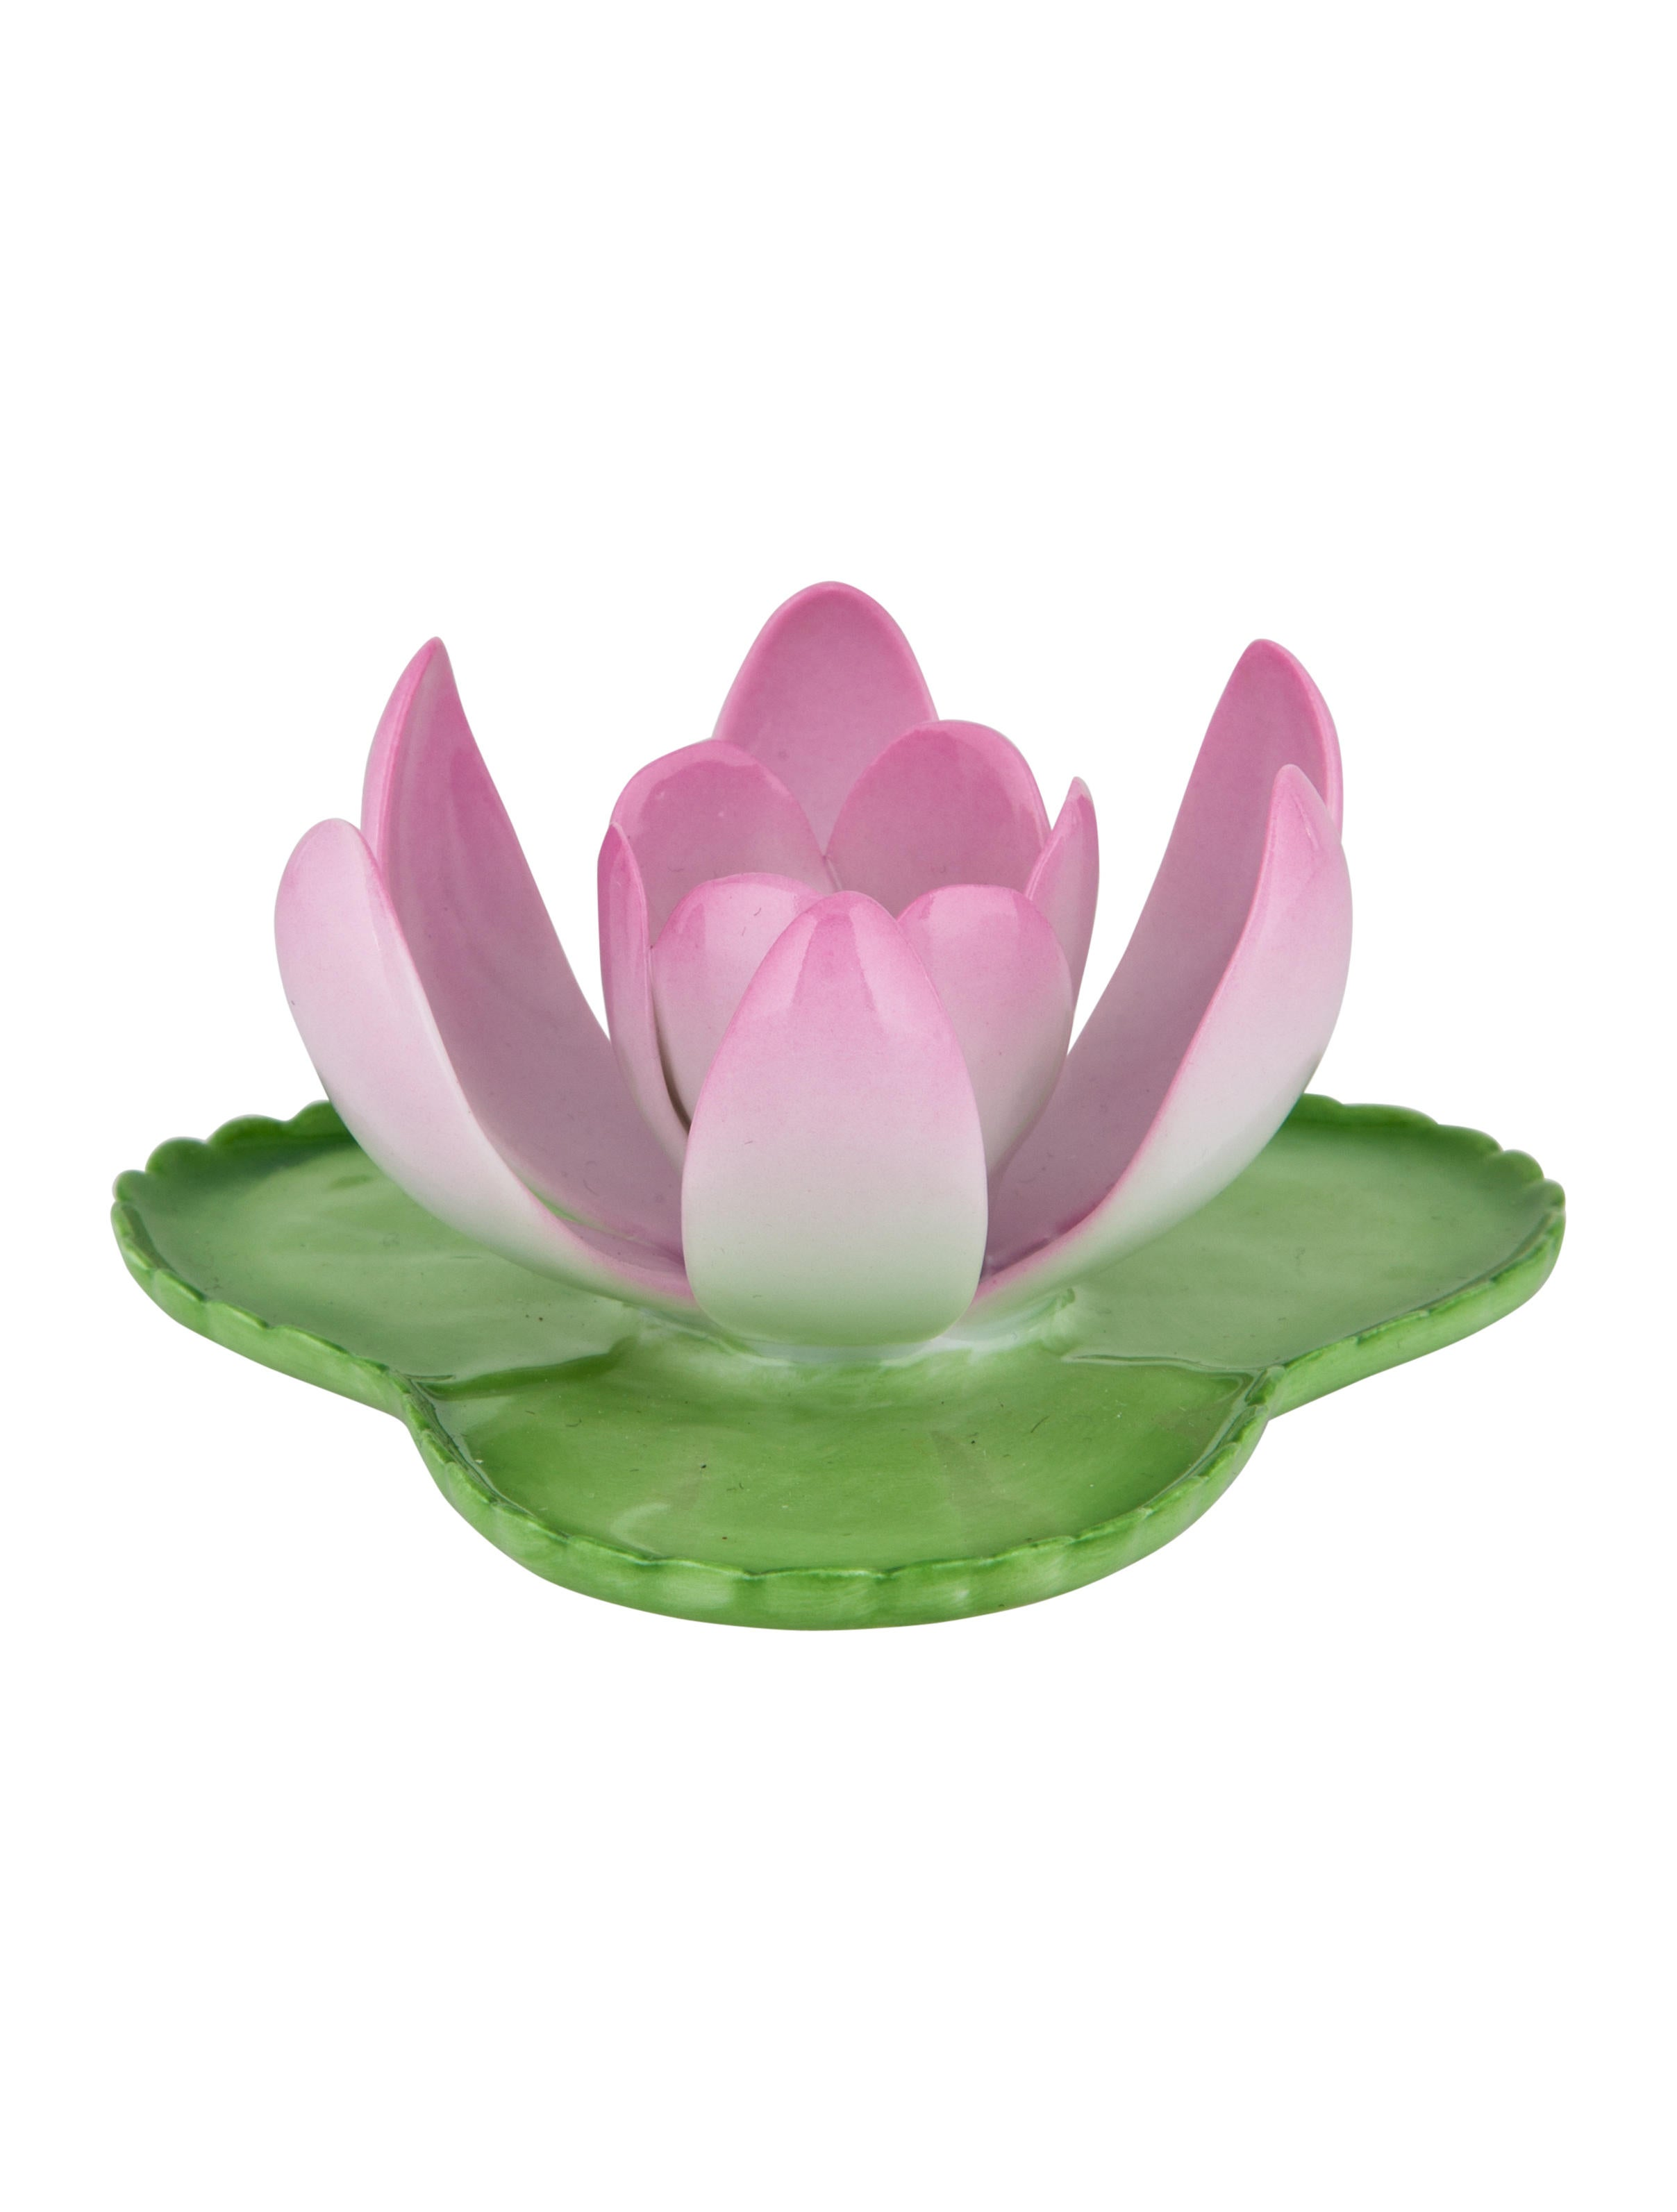 Herend Porcelain Flowers On Lily Pads Decor And Accessories